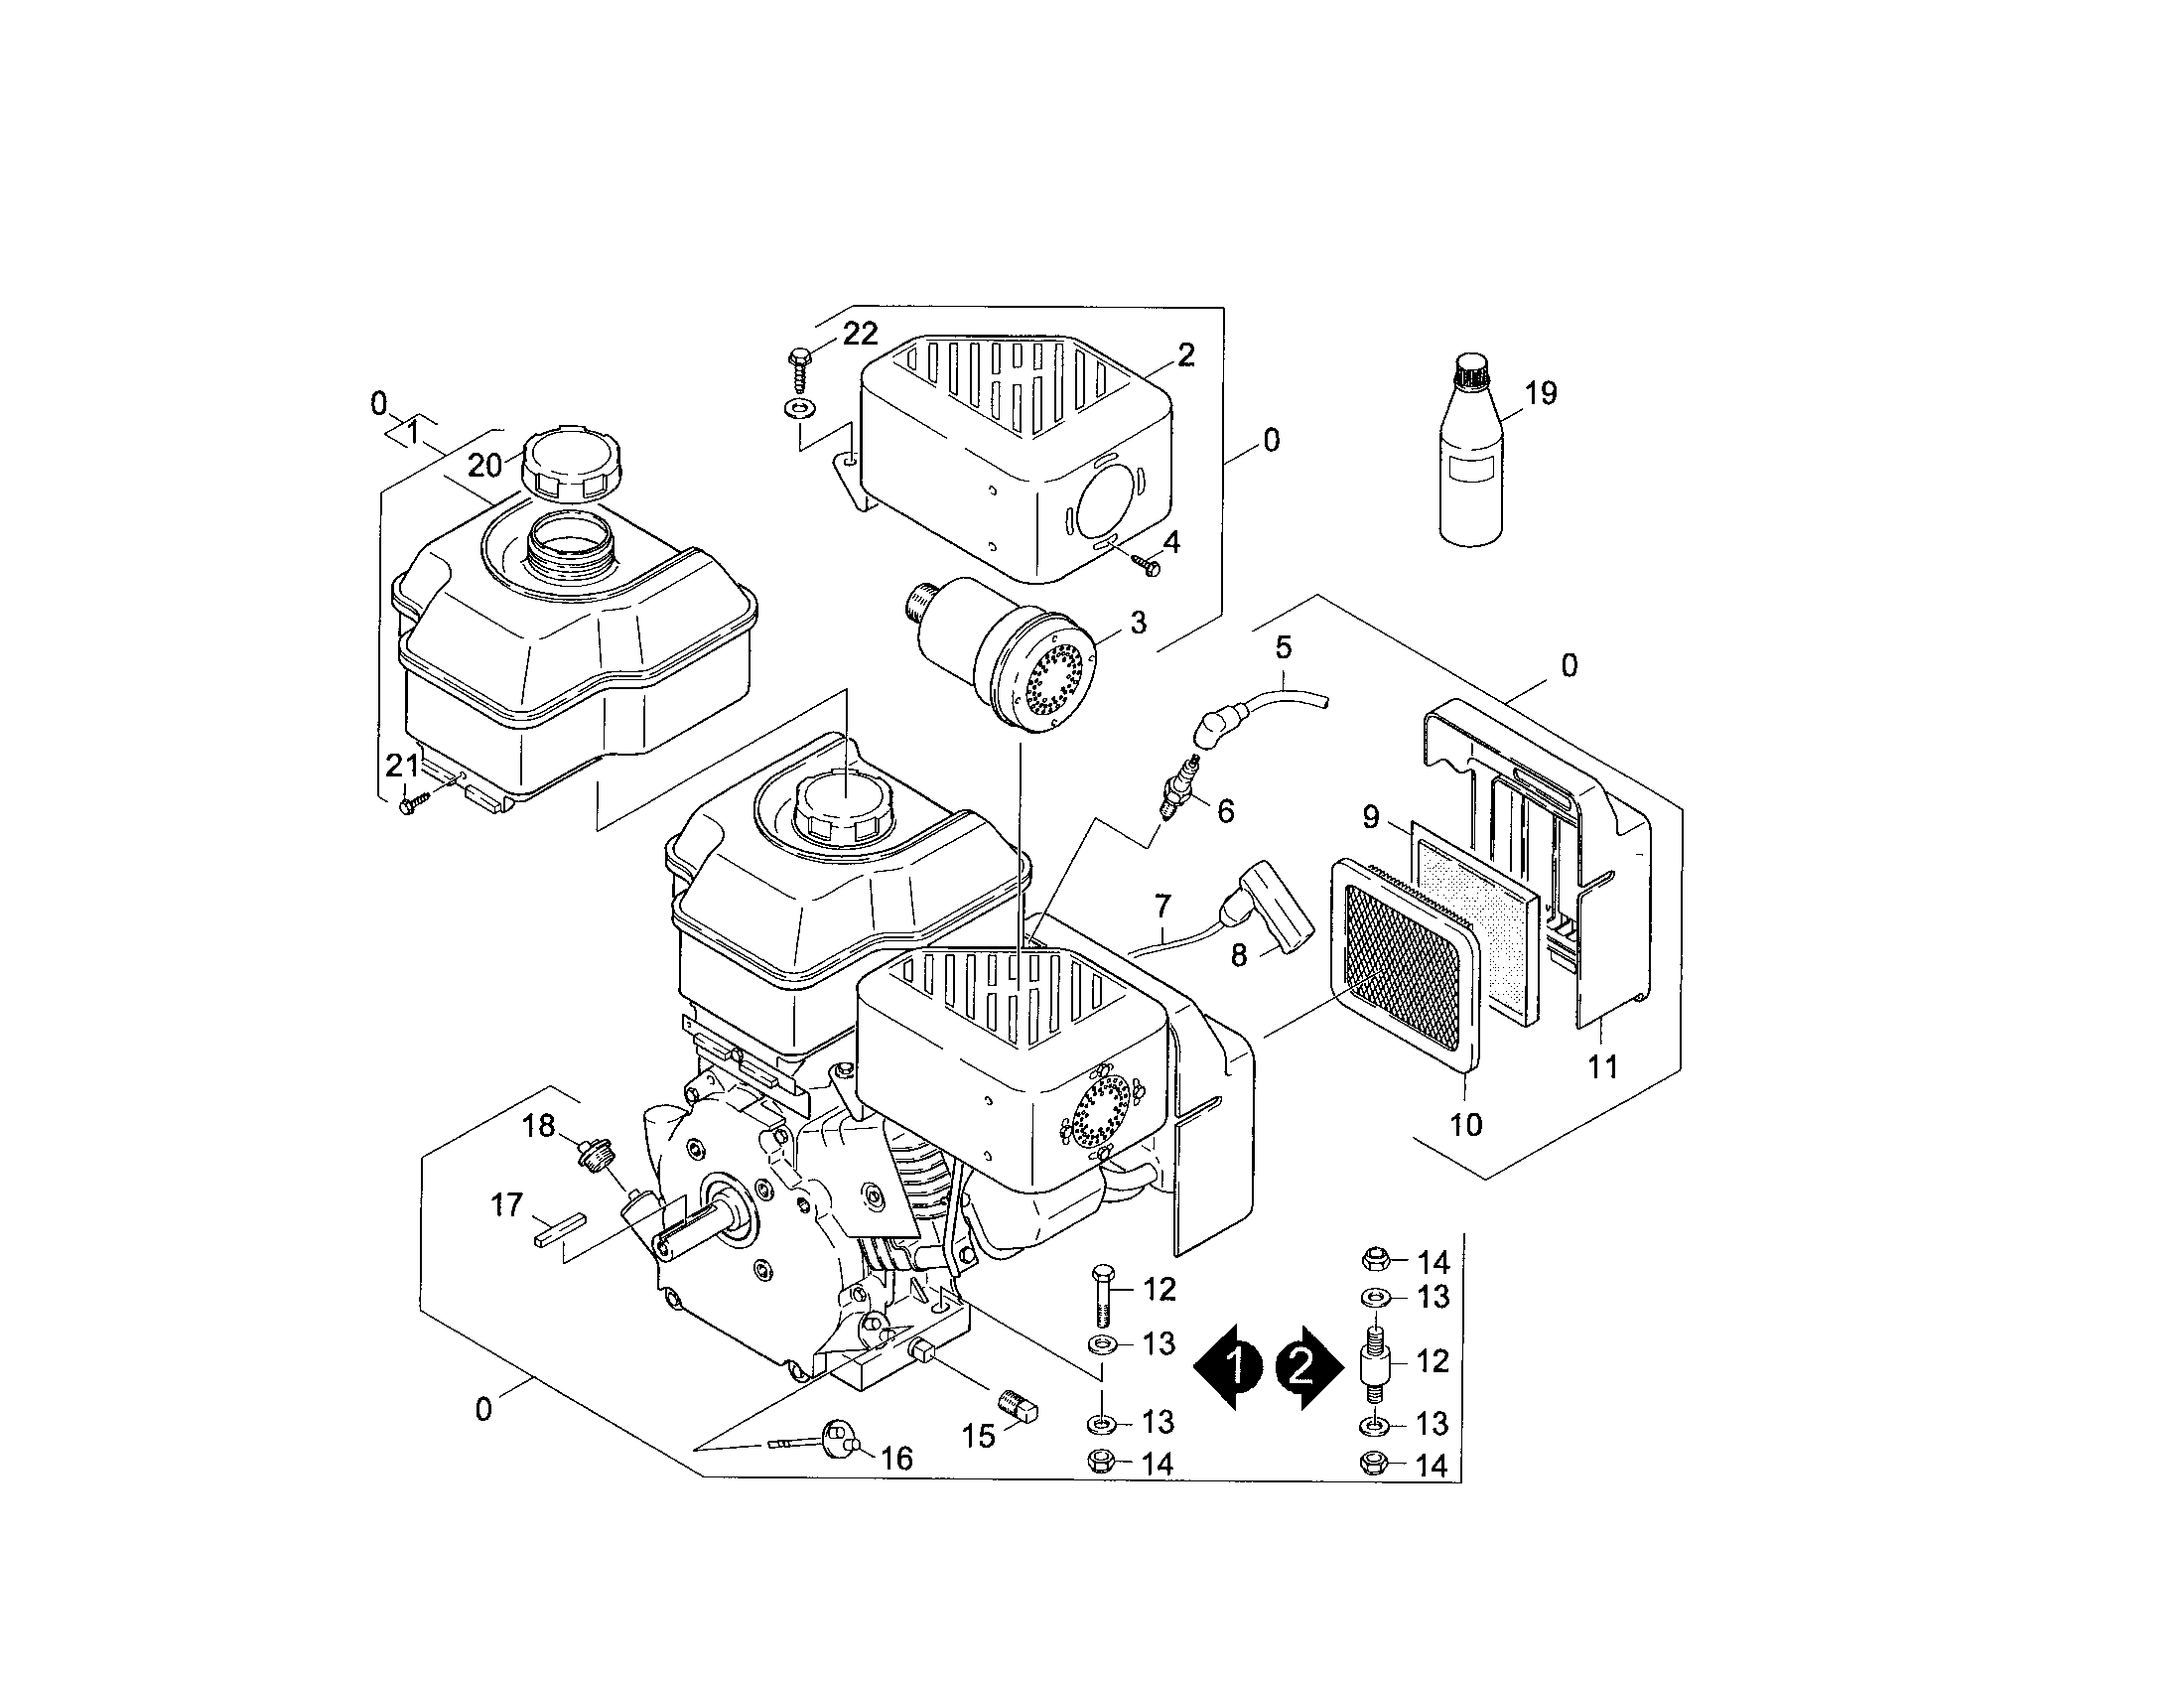 Pressure Washer Parts: Parts Diagram For Karcher Pressure